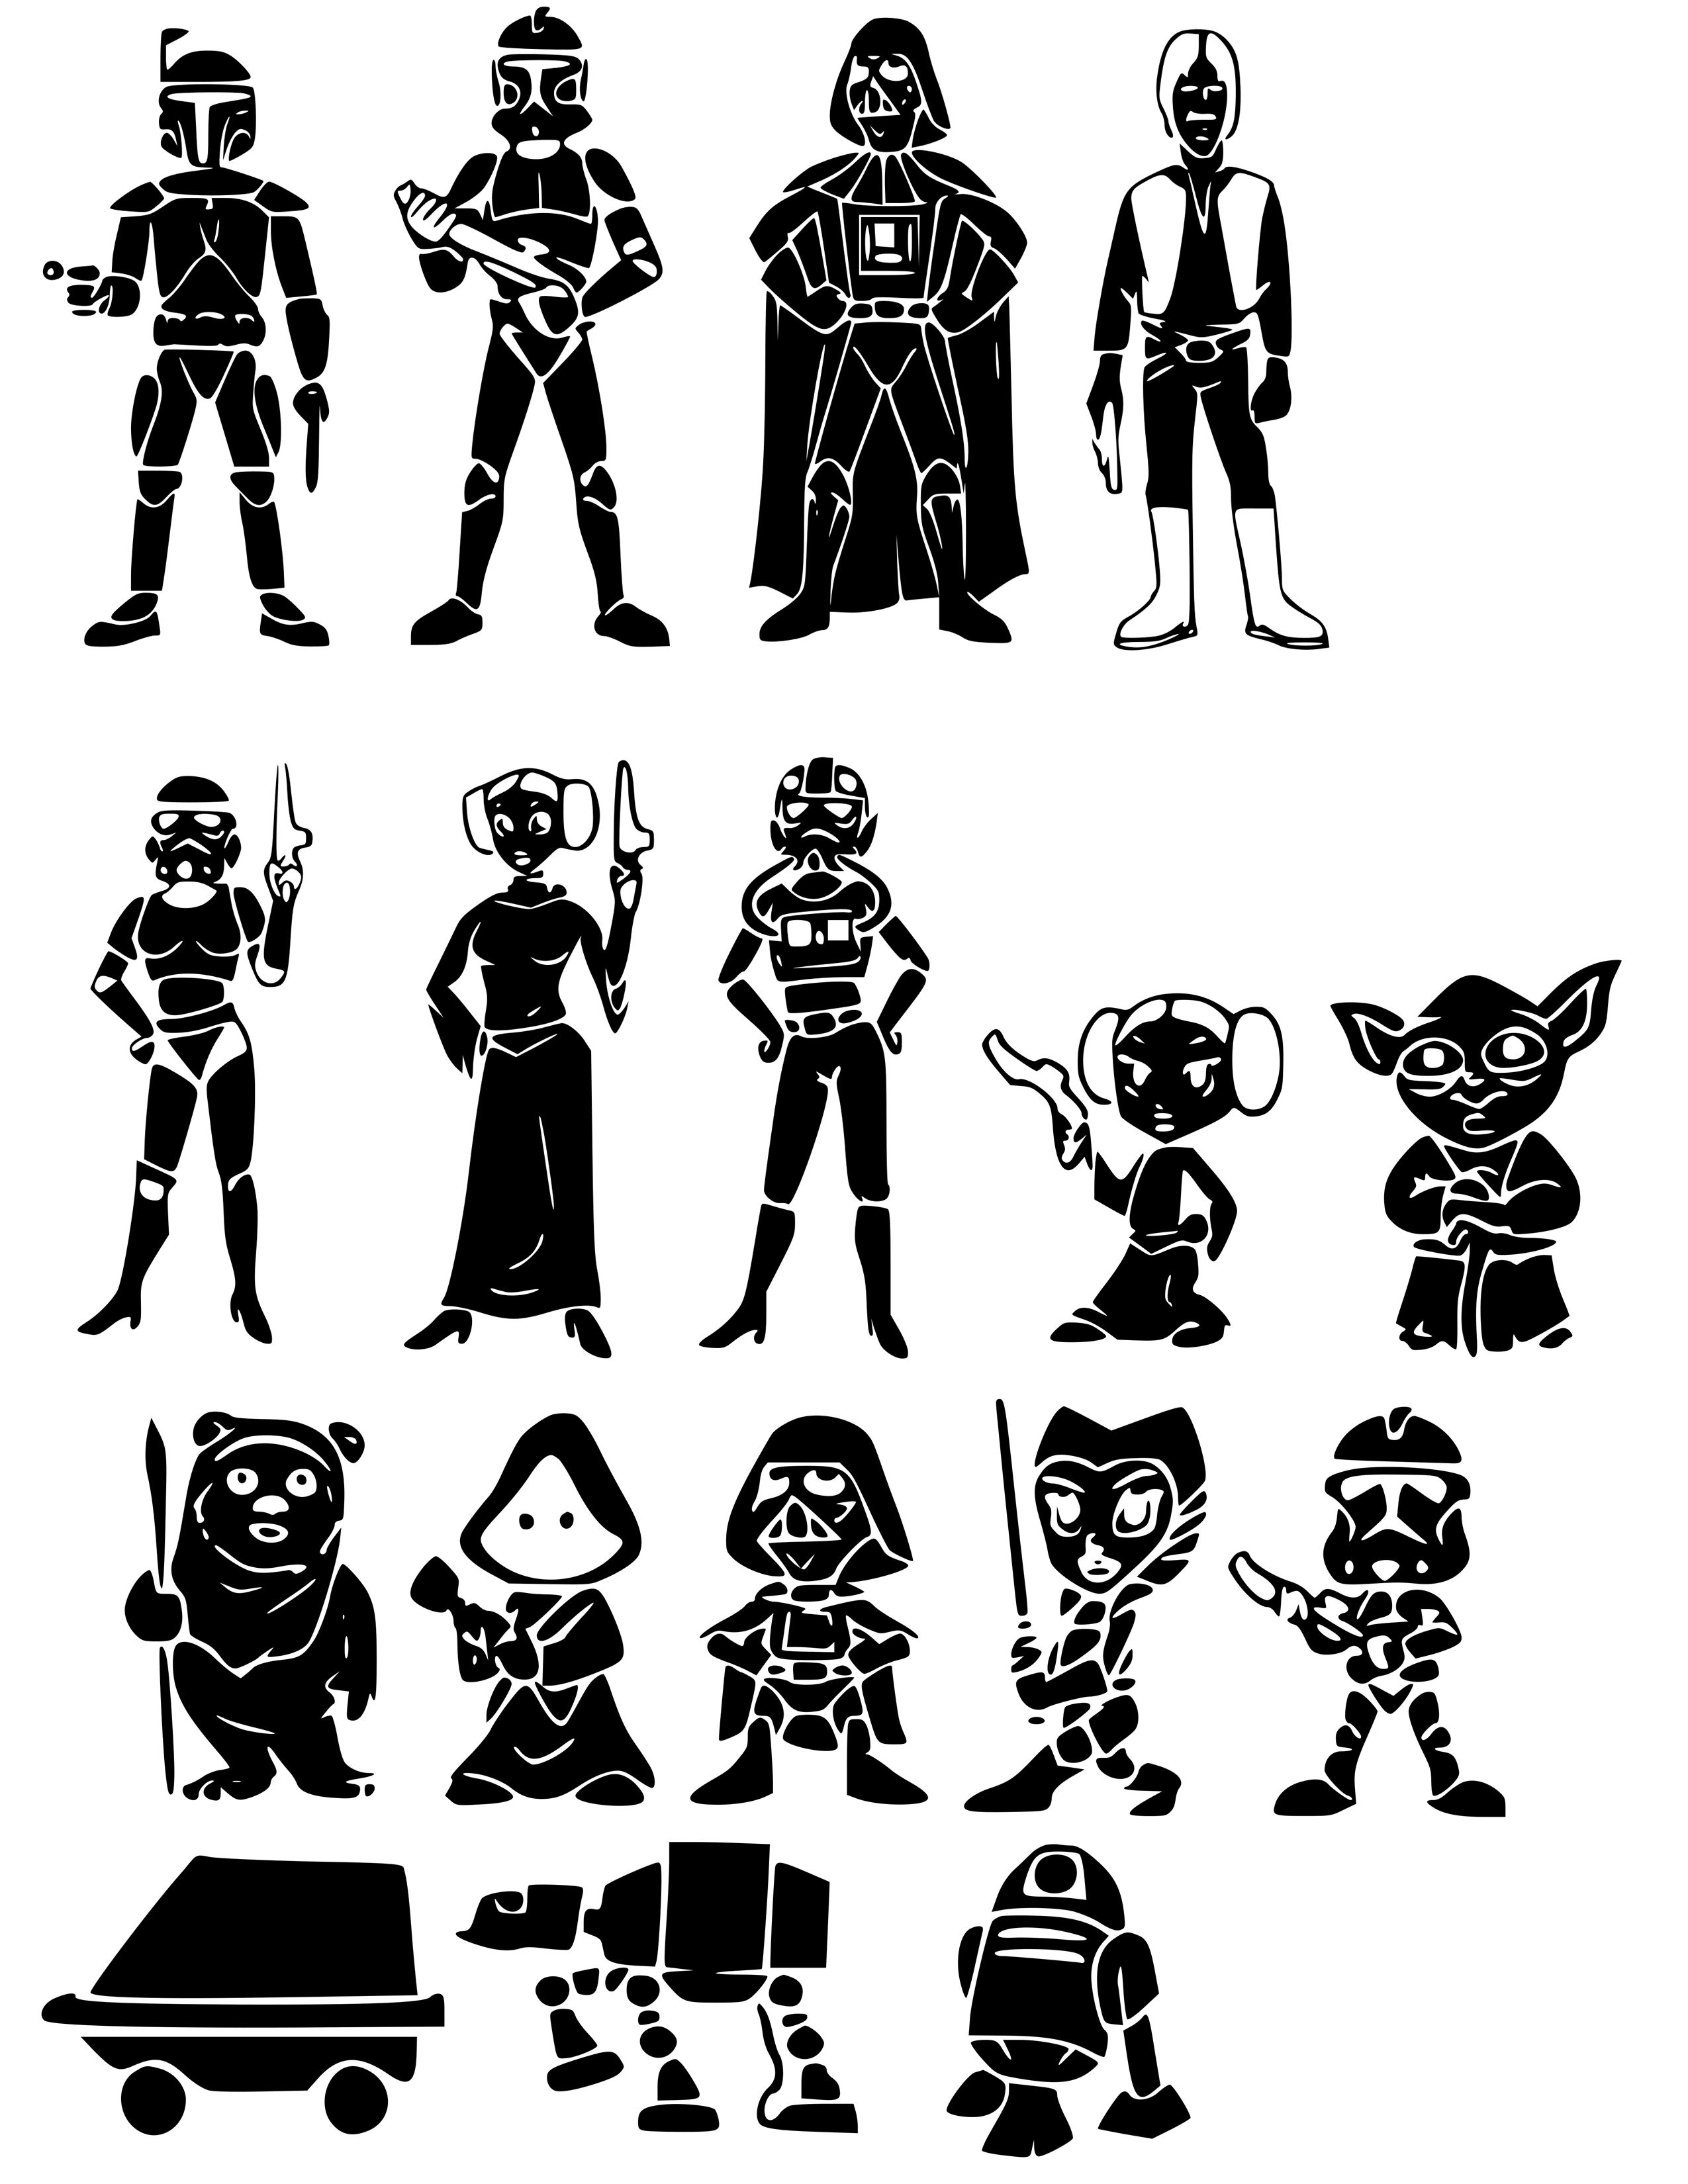 Star Wars Family SVG Files .99 for 17 characters what a